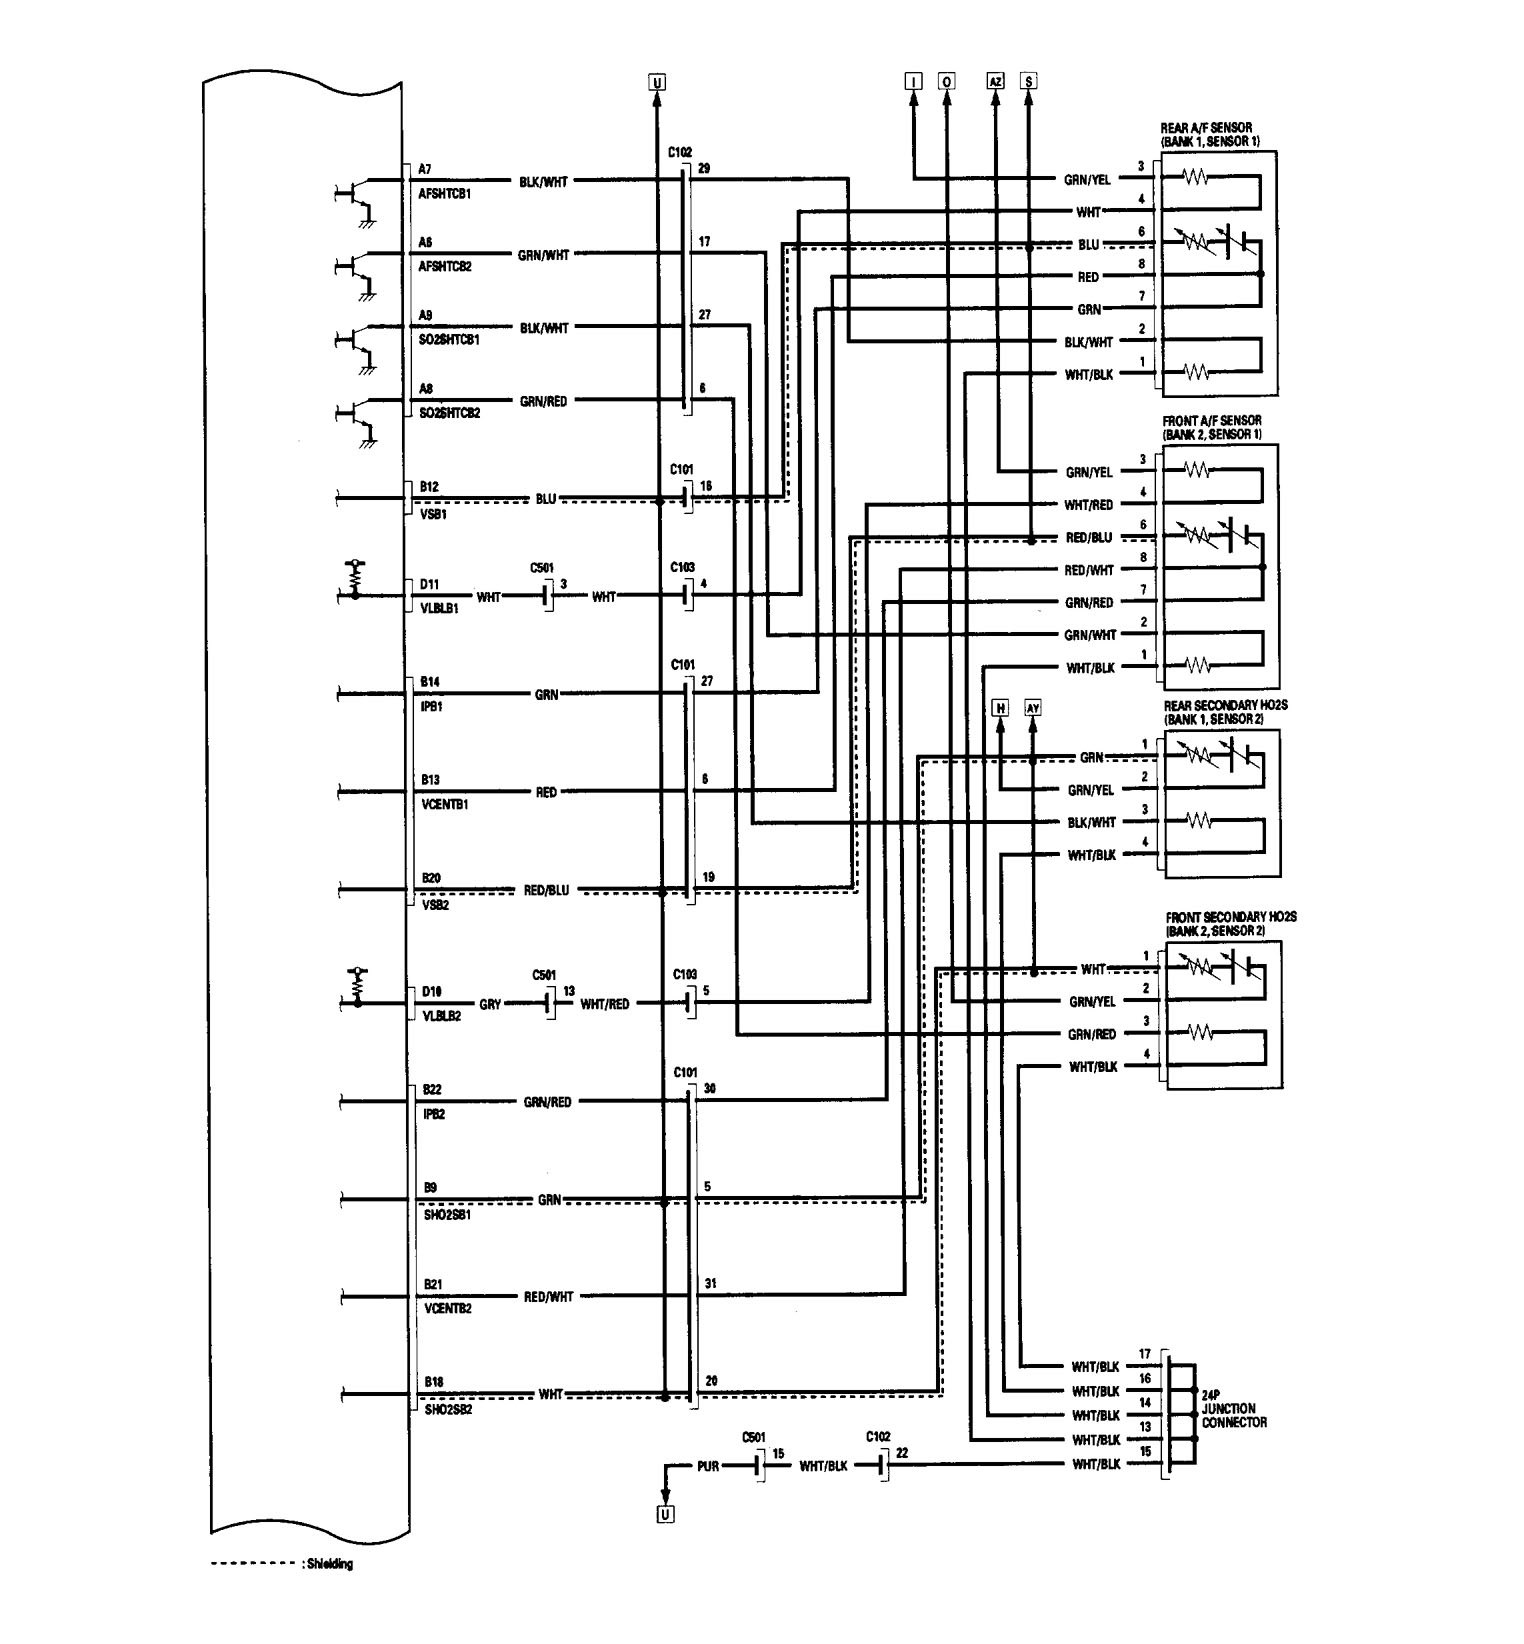 amusing wiring diagram 2006 acura rl ideas best image 2002 rsx fuse box  diagram 2002 rsx